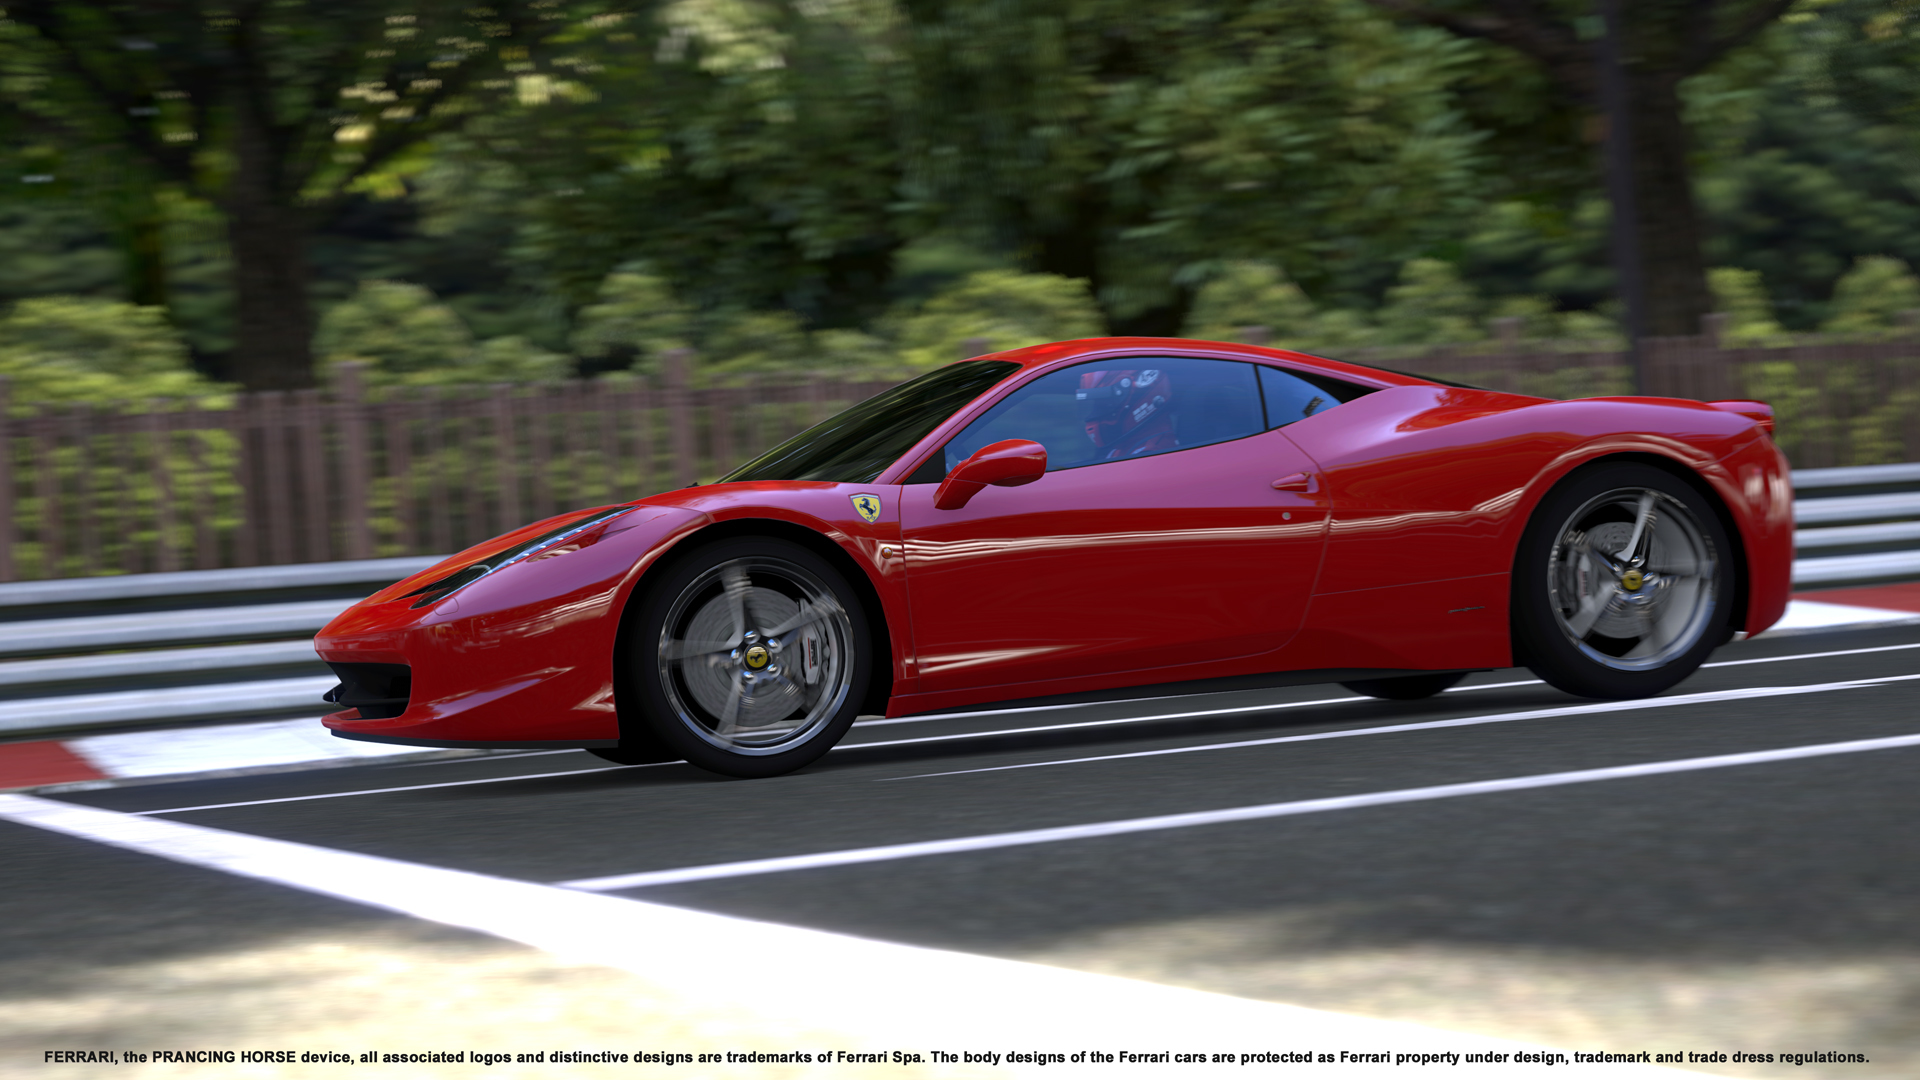 cars Ferrari vehicles italia HD Wallpaper